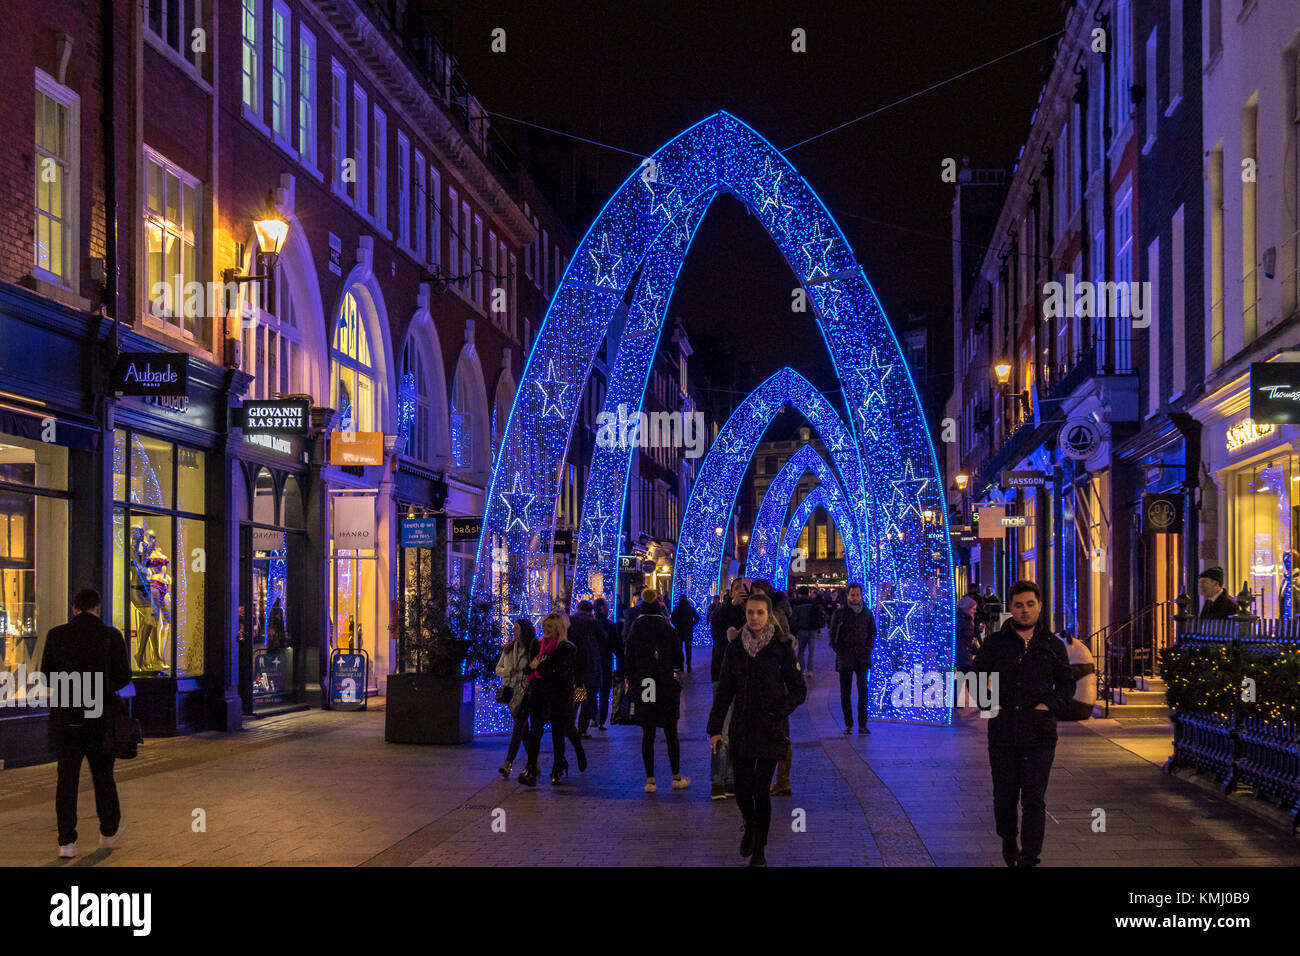 Blue Christmas Arches give a festive feel to South Molton St , London - Stock Image